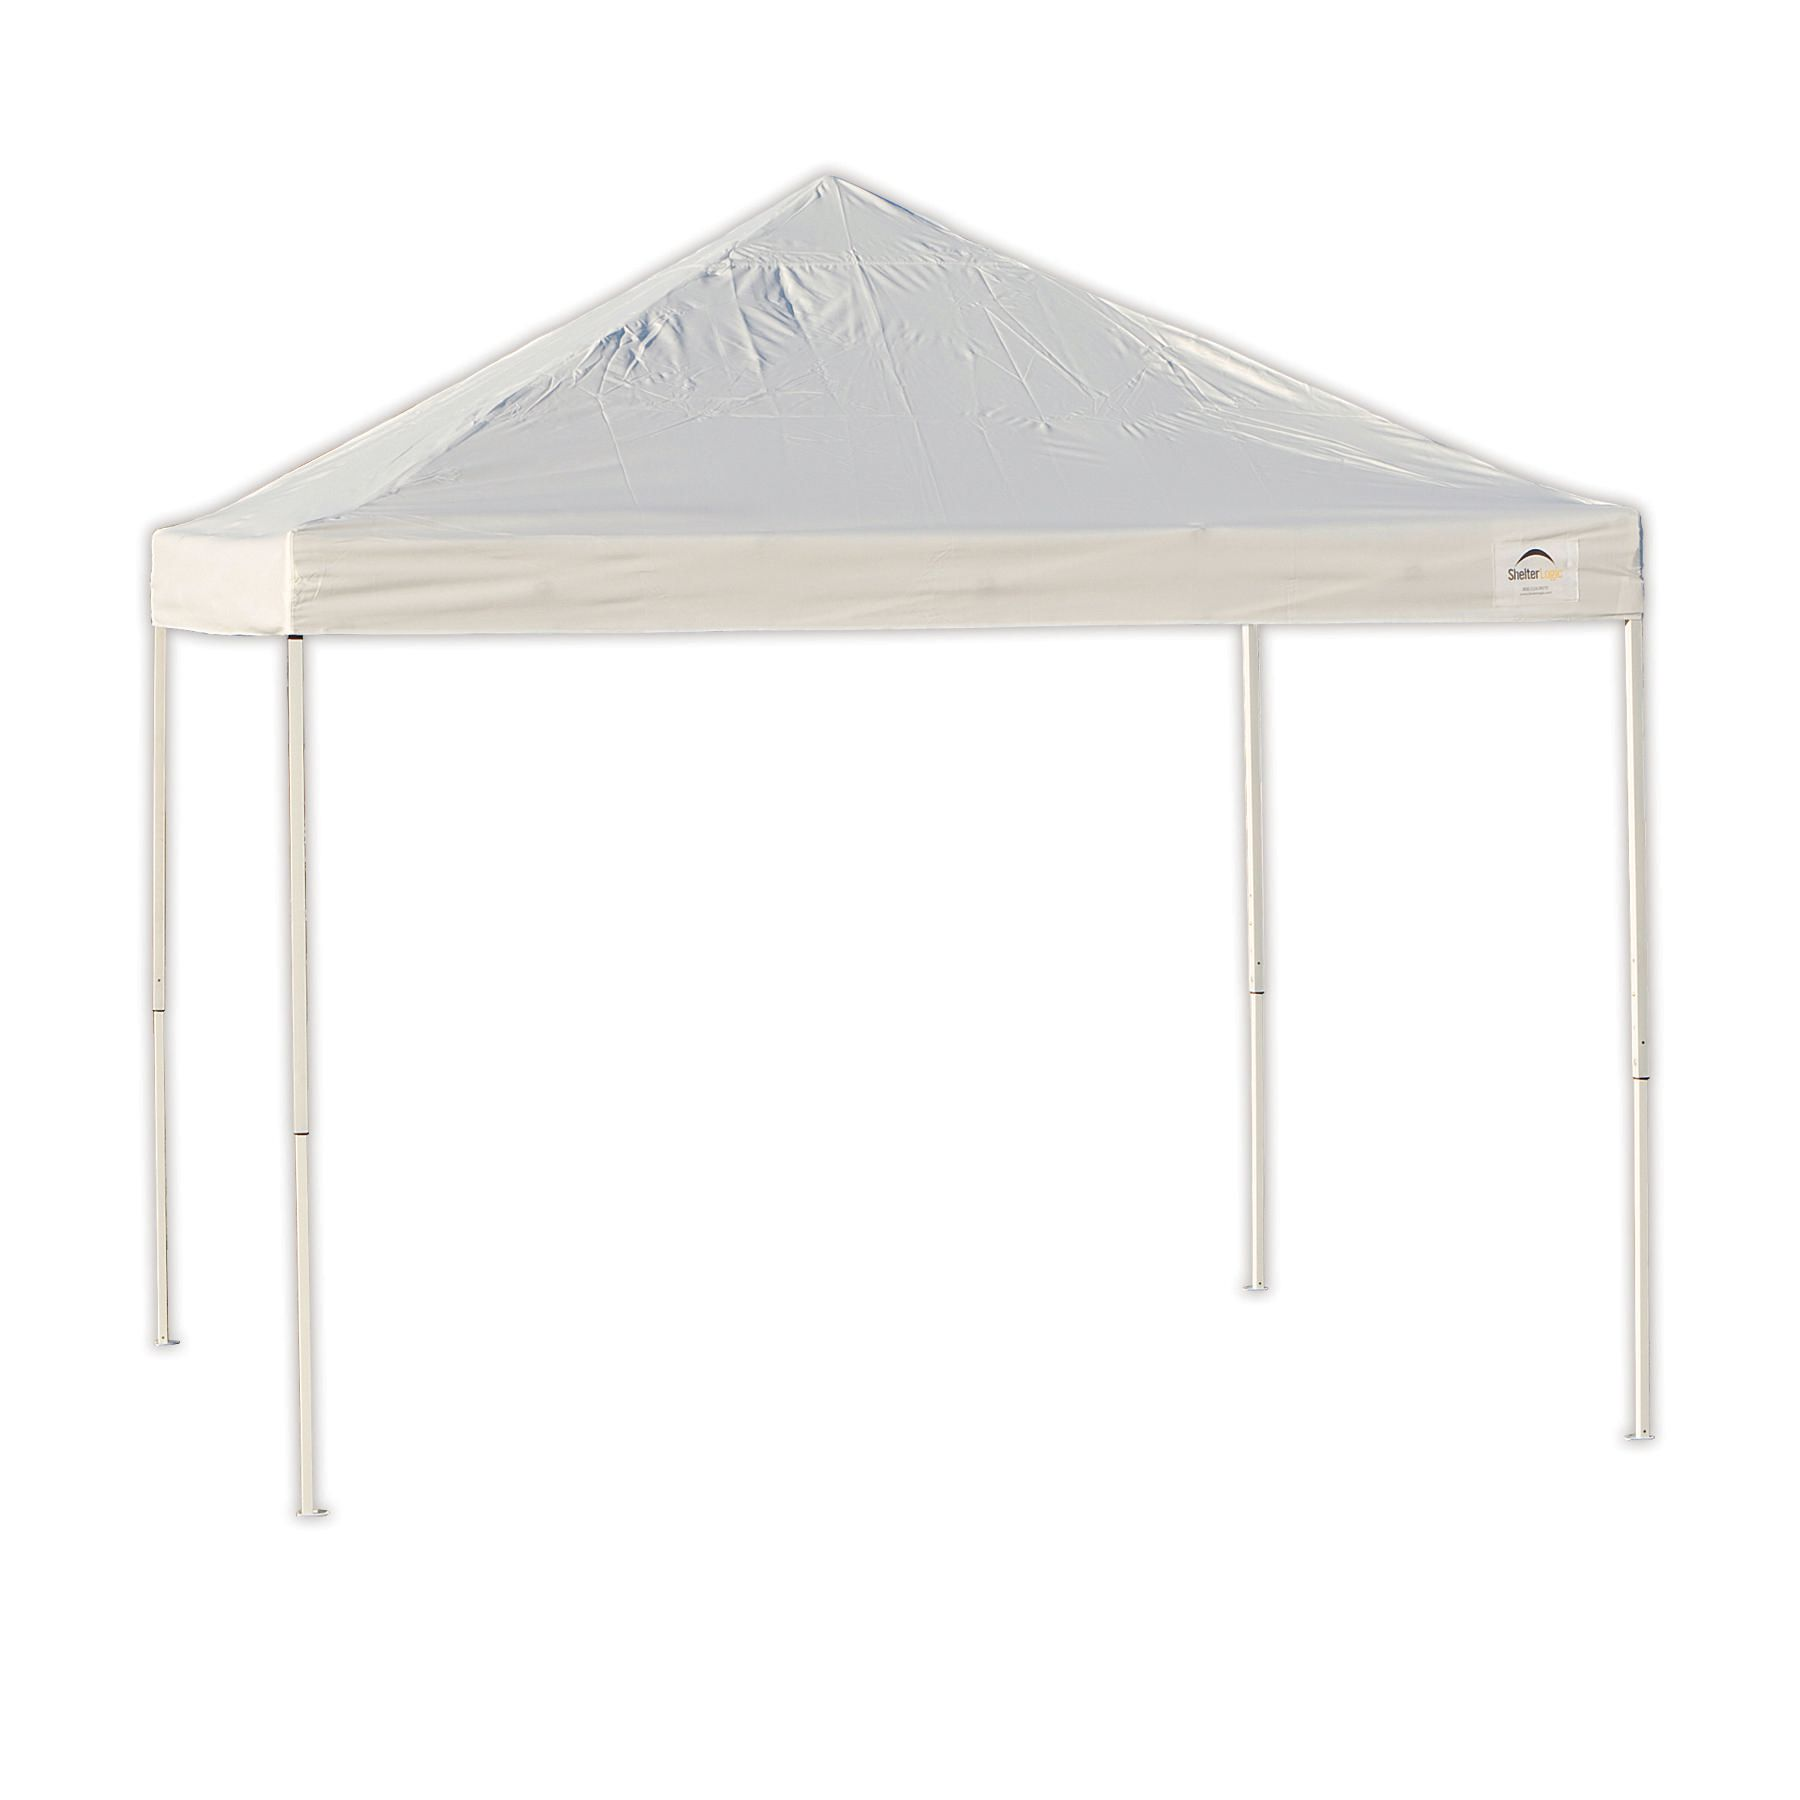 Pop Up Sun Shelter Canada Shelterlogic Pro 10 X 10 White Straight Leg Pop Up Canopy